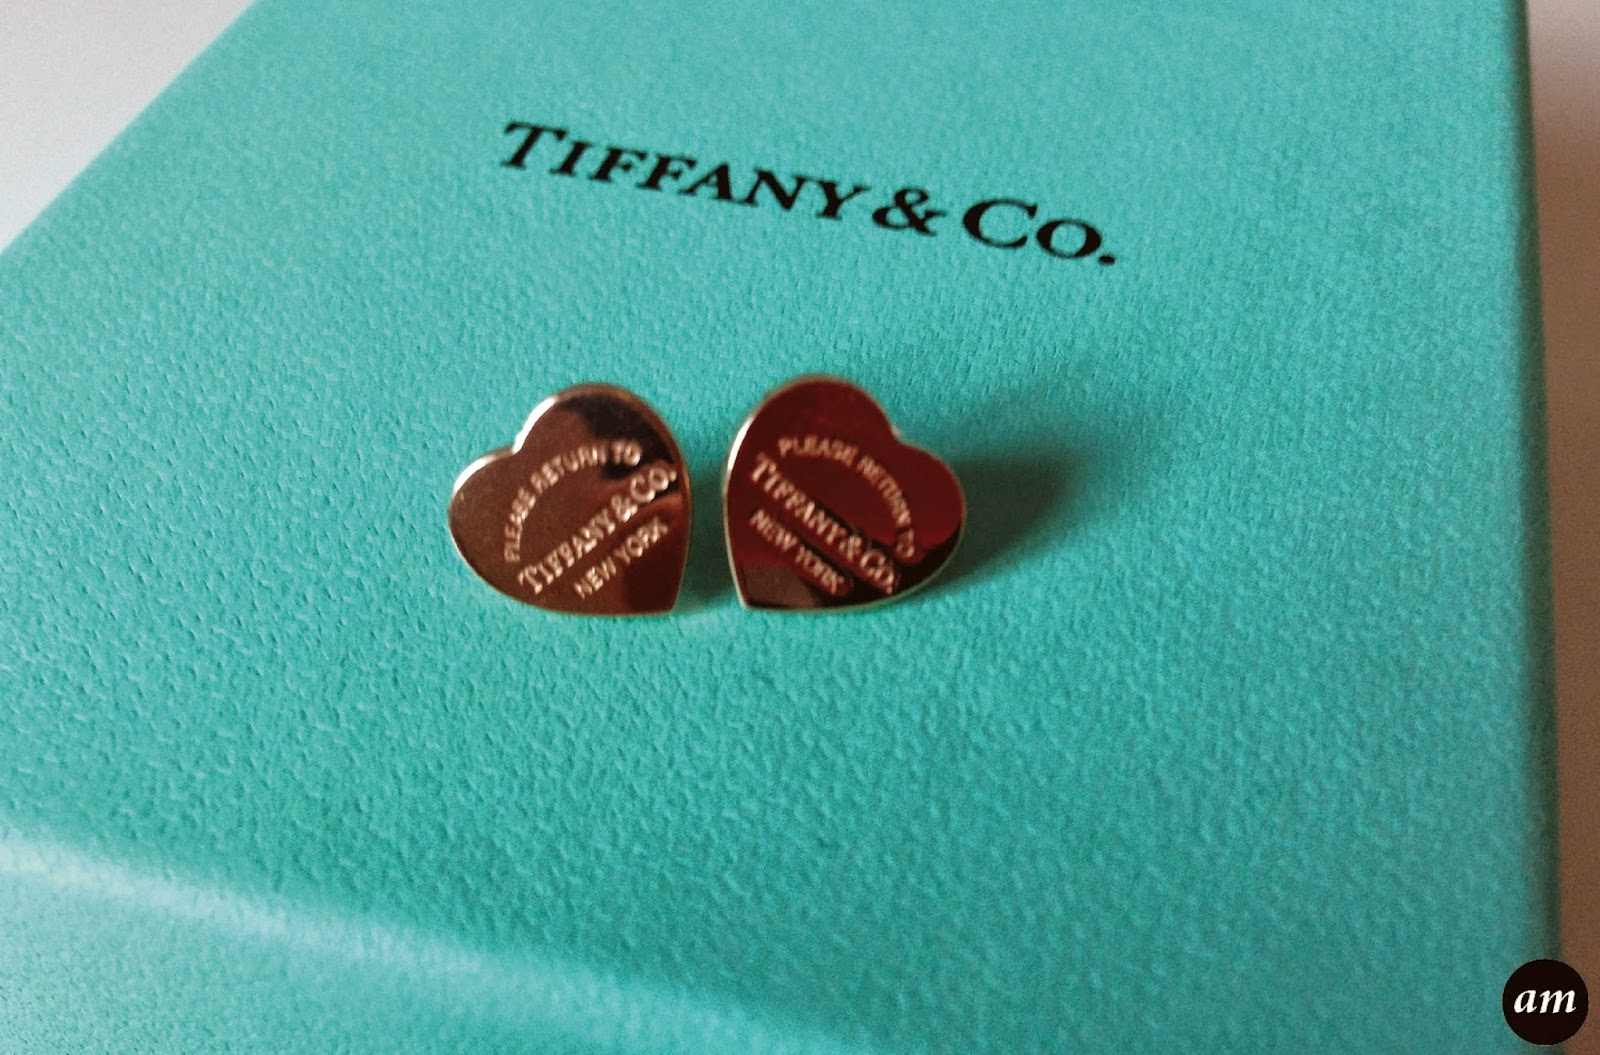 These Beautiful Tiffany Co Earrings Were One Of The Many Things I Bought While Celebrating My 16th Birthday In New York March